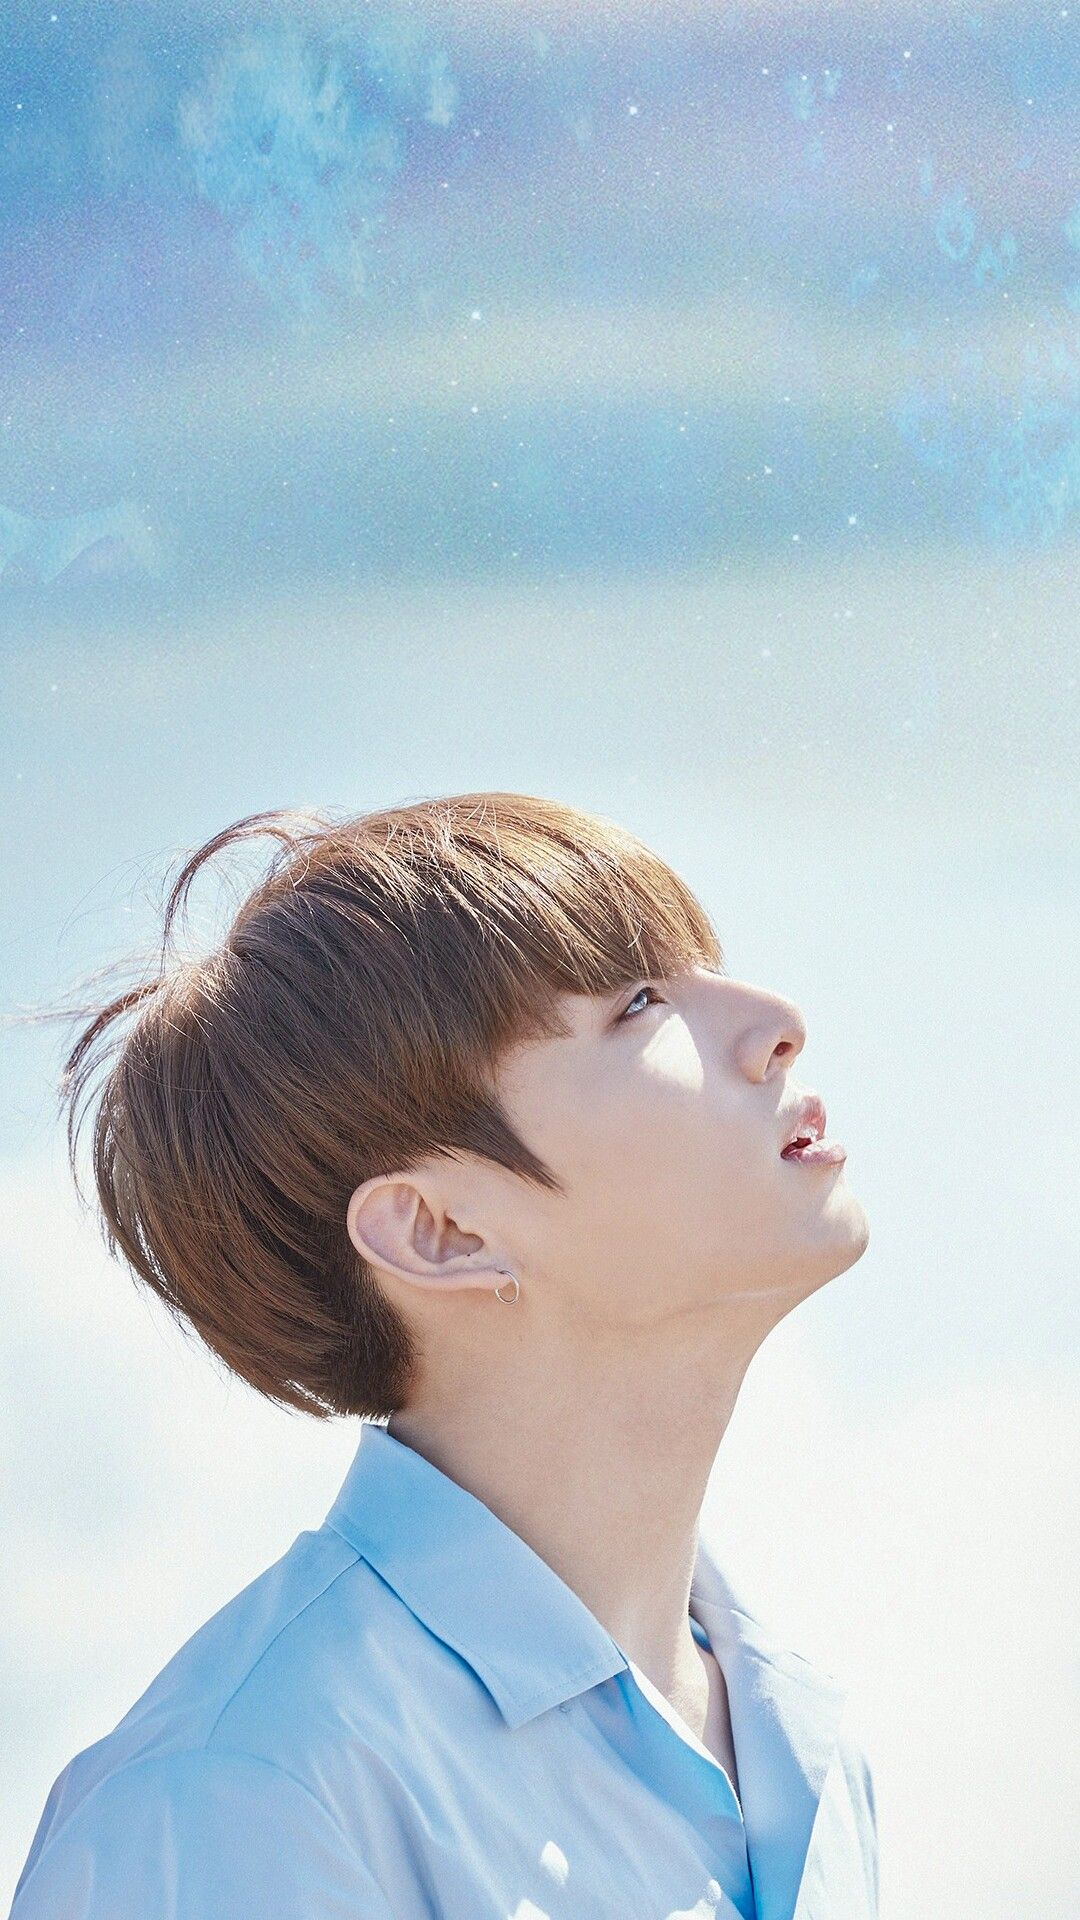 Jungkook wallpaper BTS 2018 Season's greetings ♡ Gambar